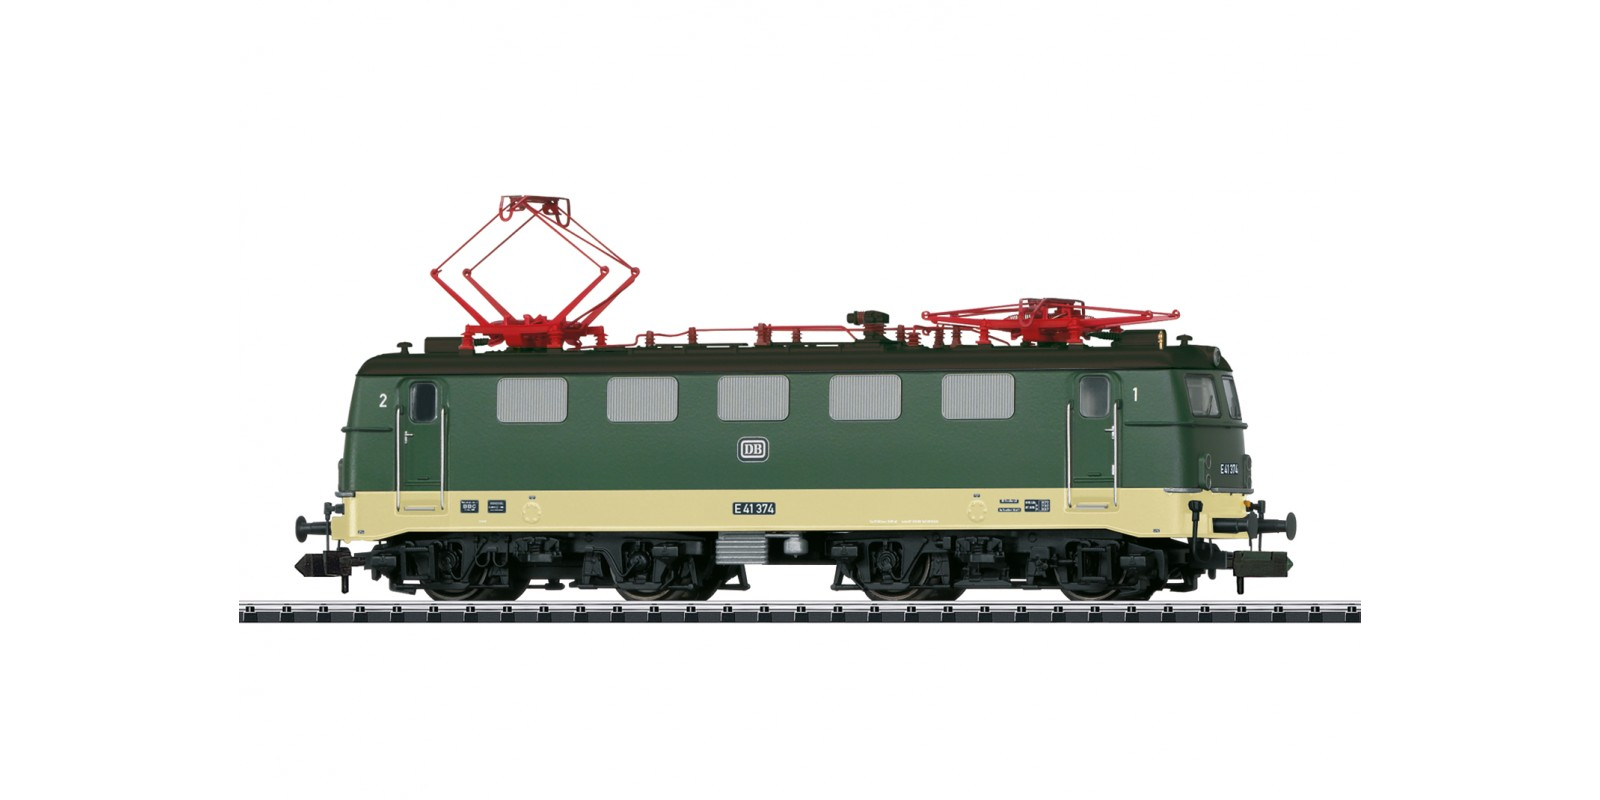 T16141 Electric Locomotive, Road Number E 41 374